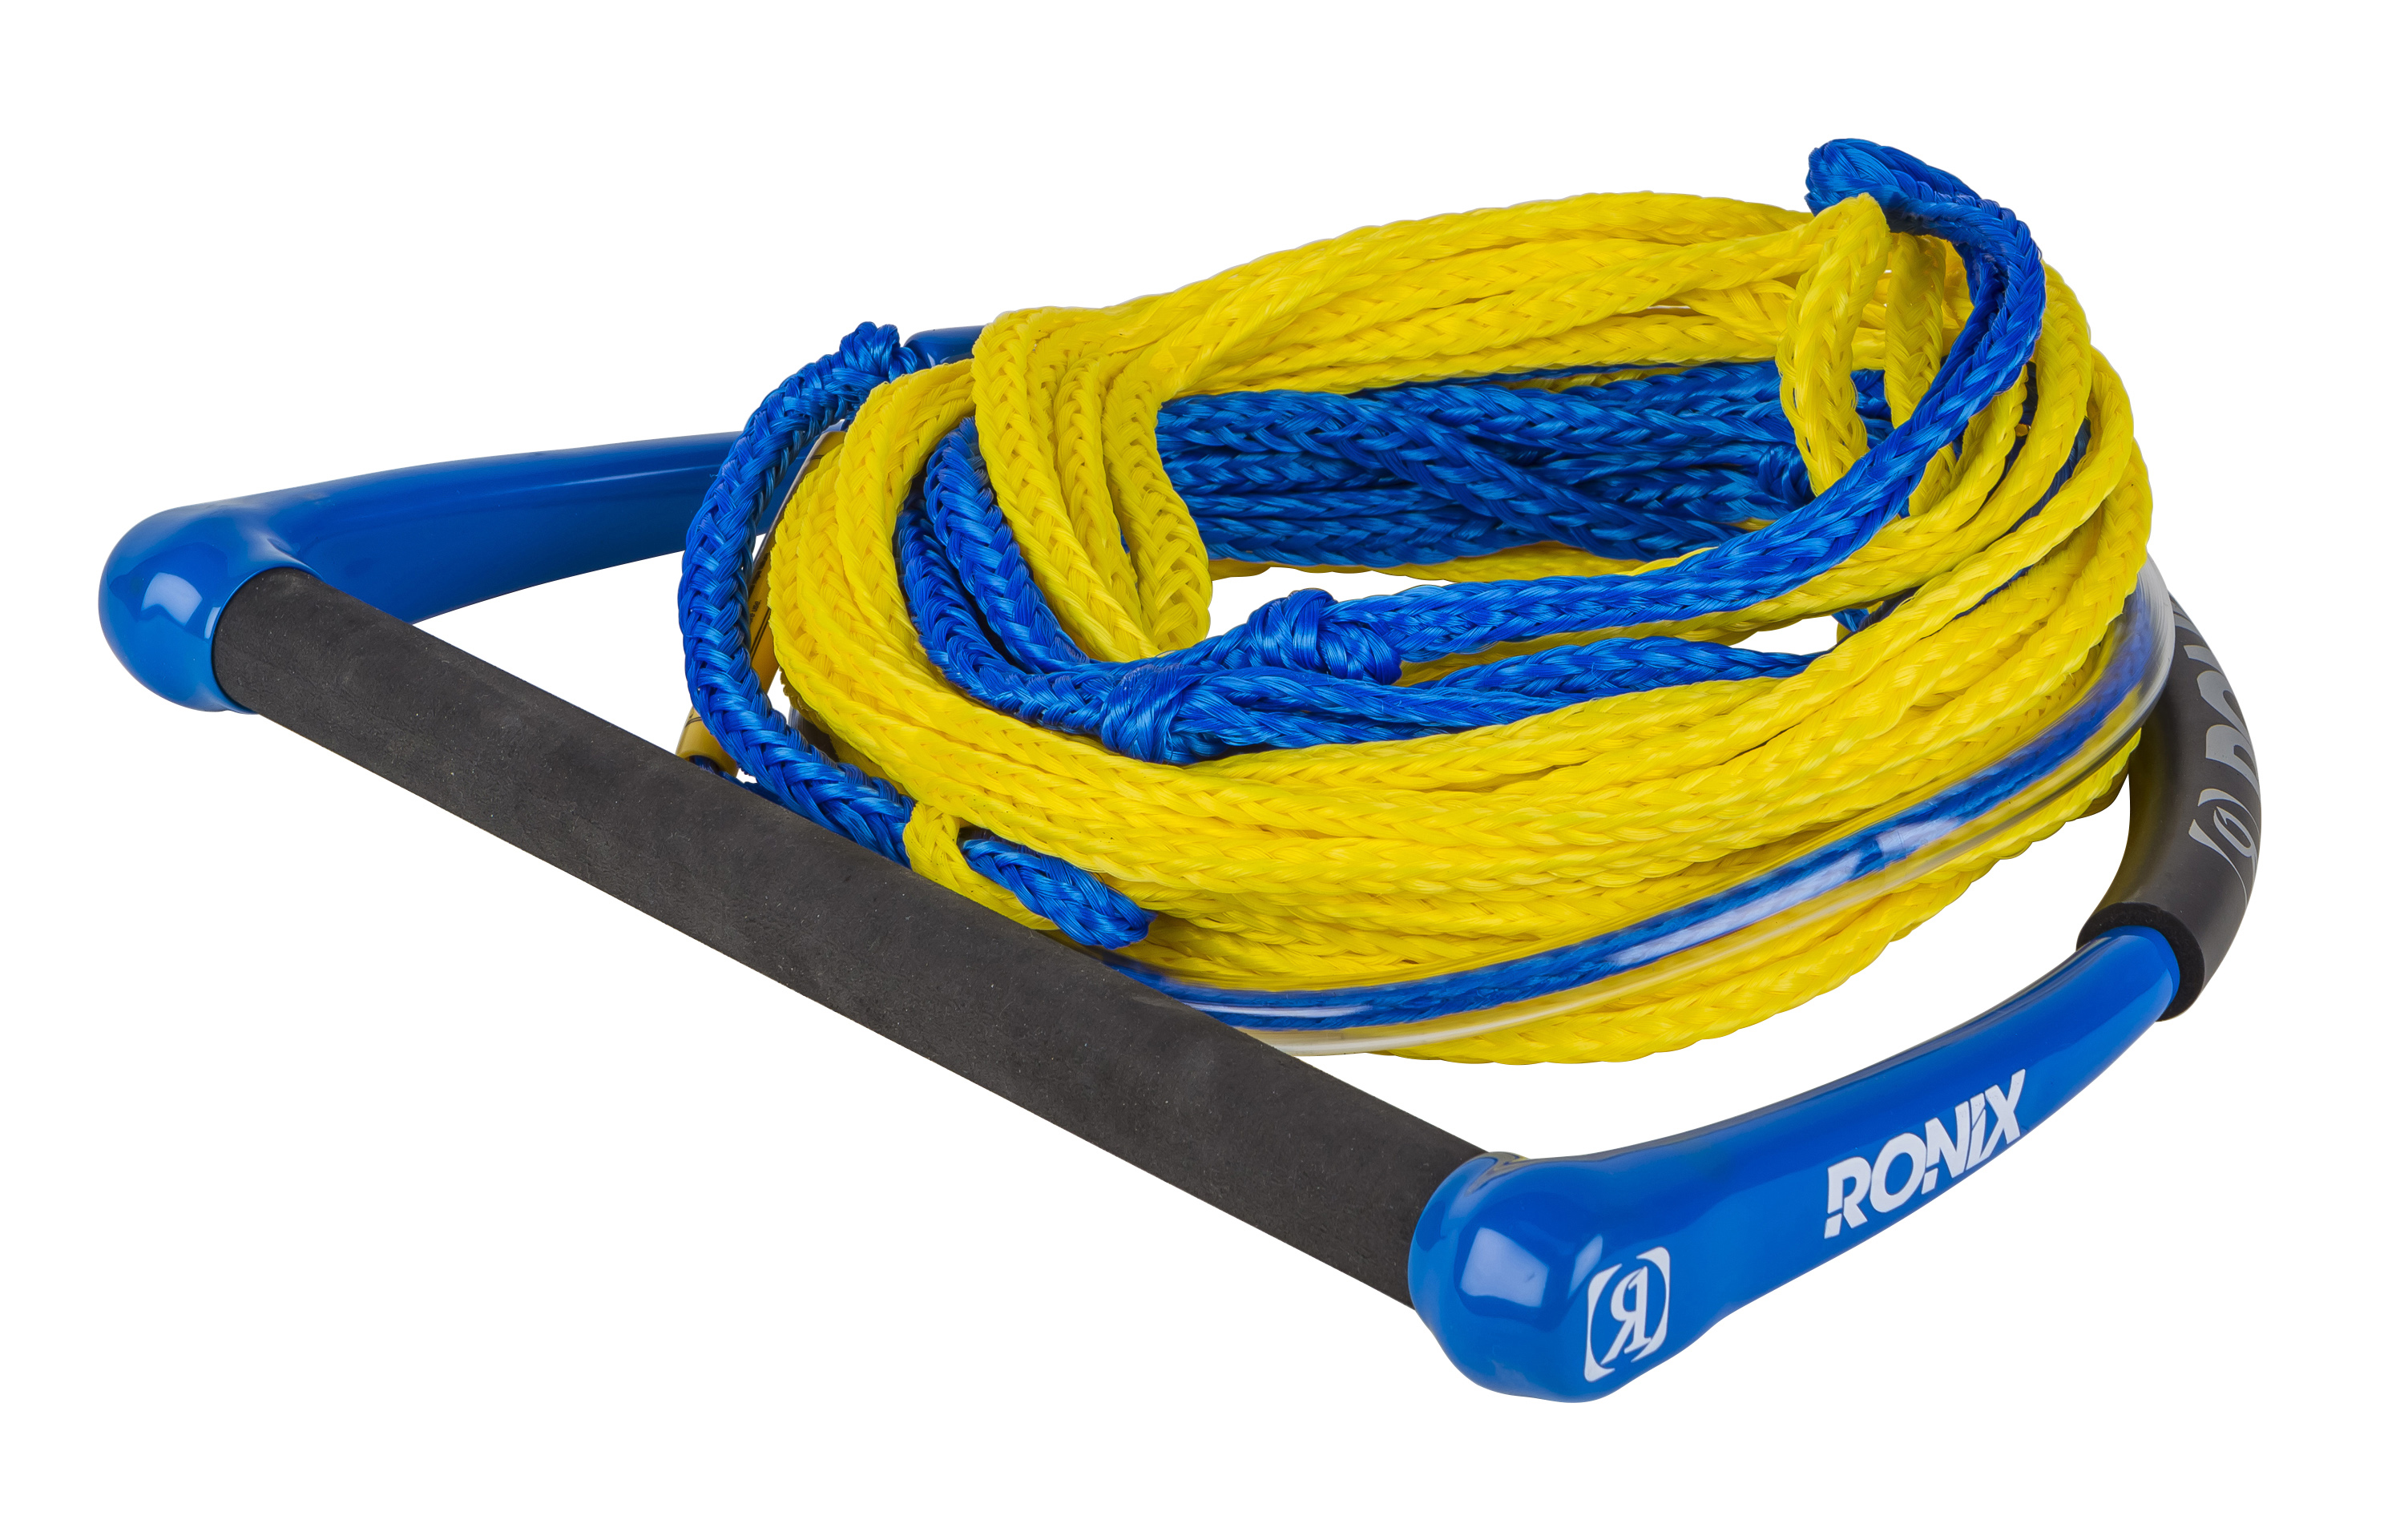 COMBO 1.0 - TPR GRIP W/65 FT 4-SECTIONS PE ROPE RONIX 2017